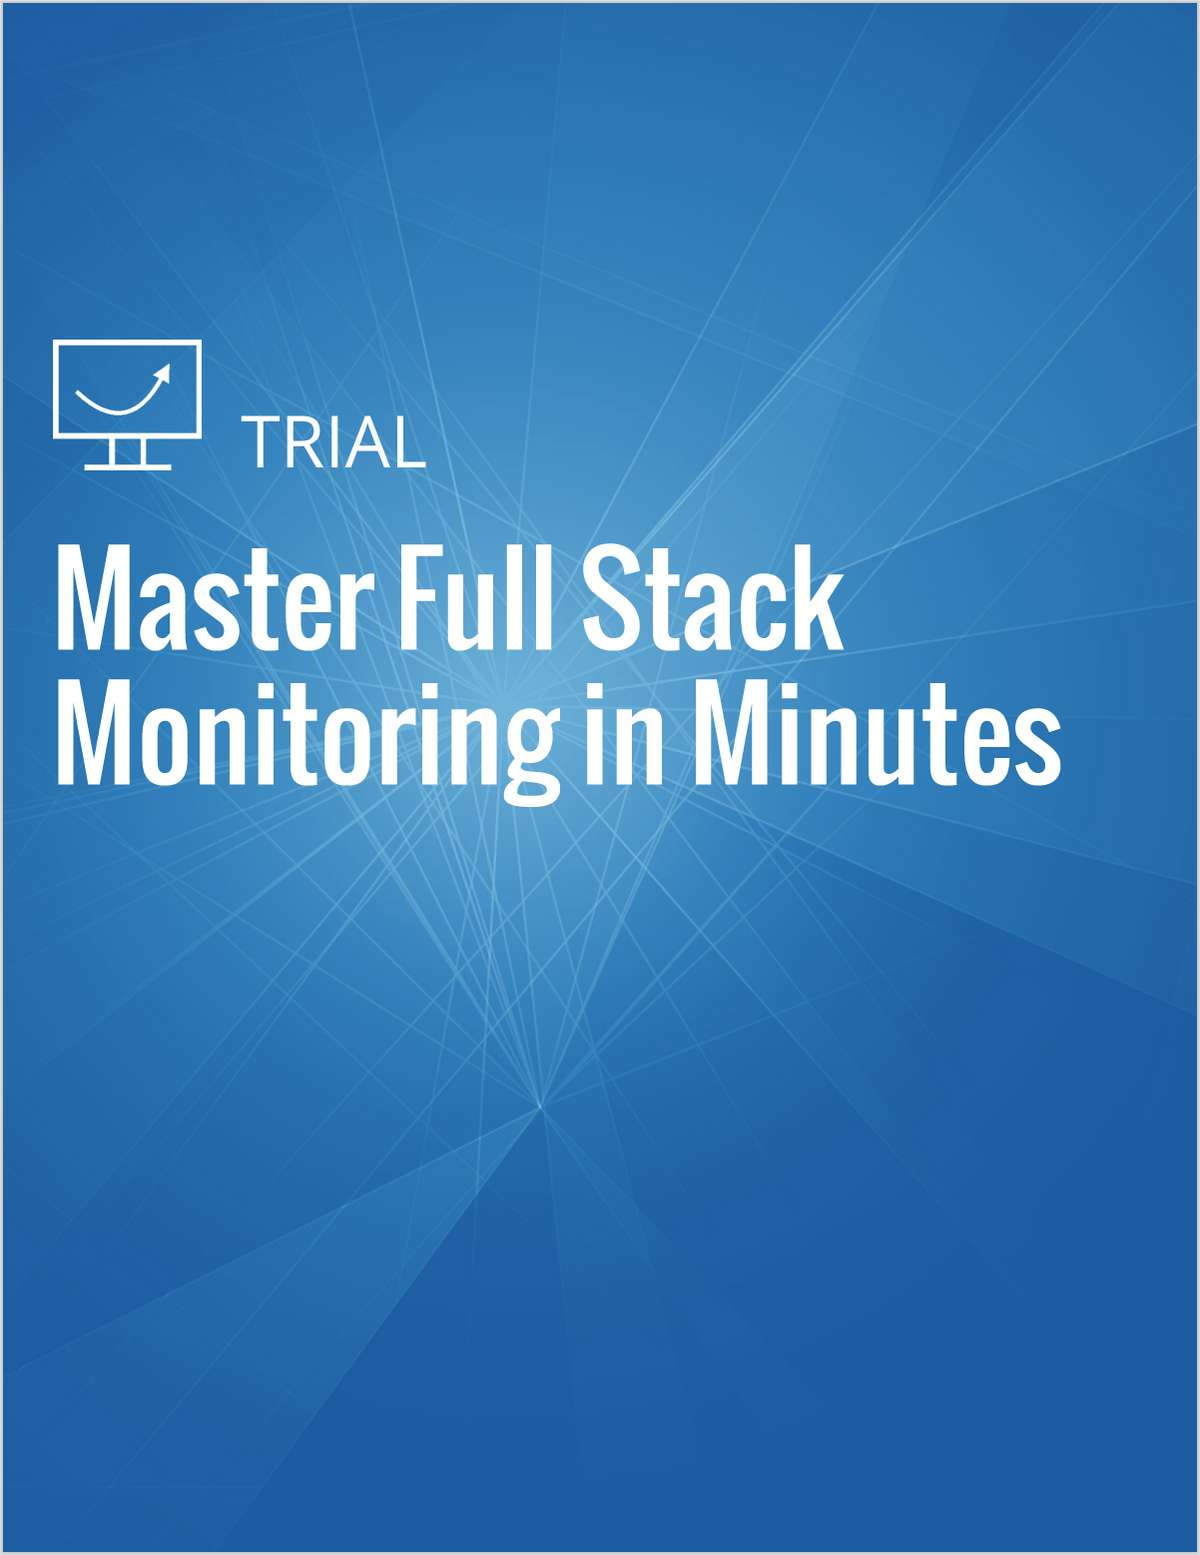 Master Full Stack Monitoring in Minutes